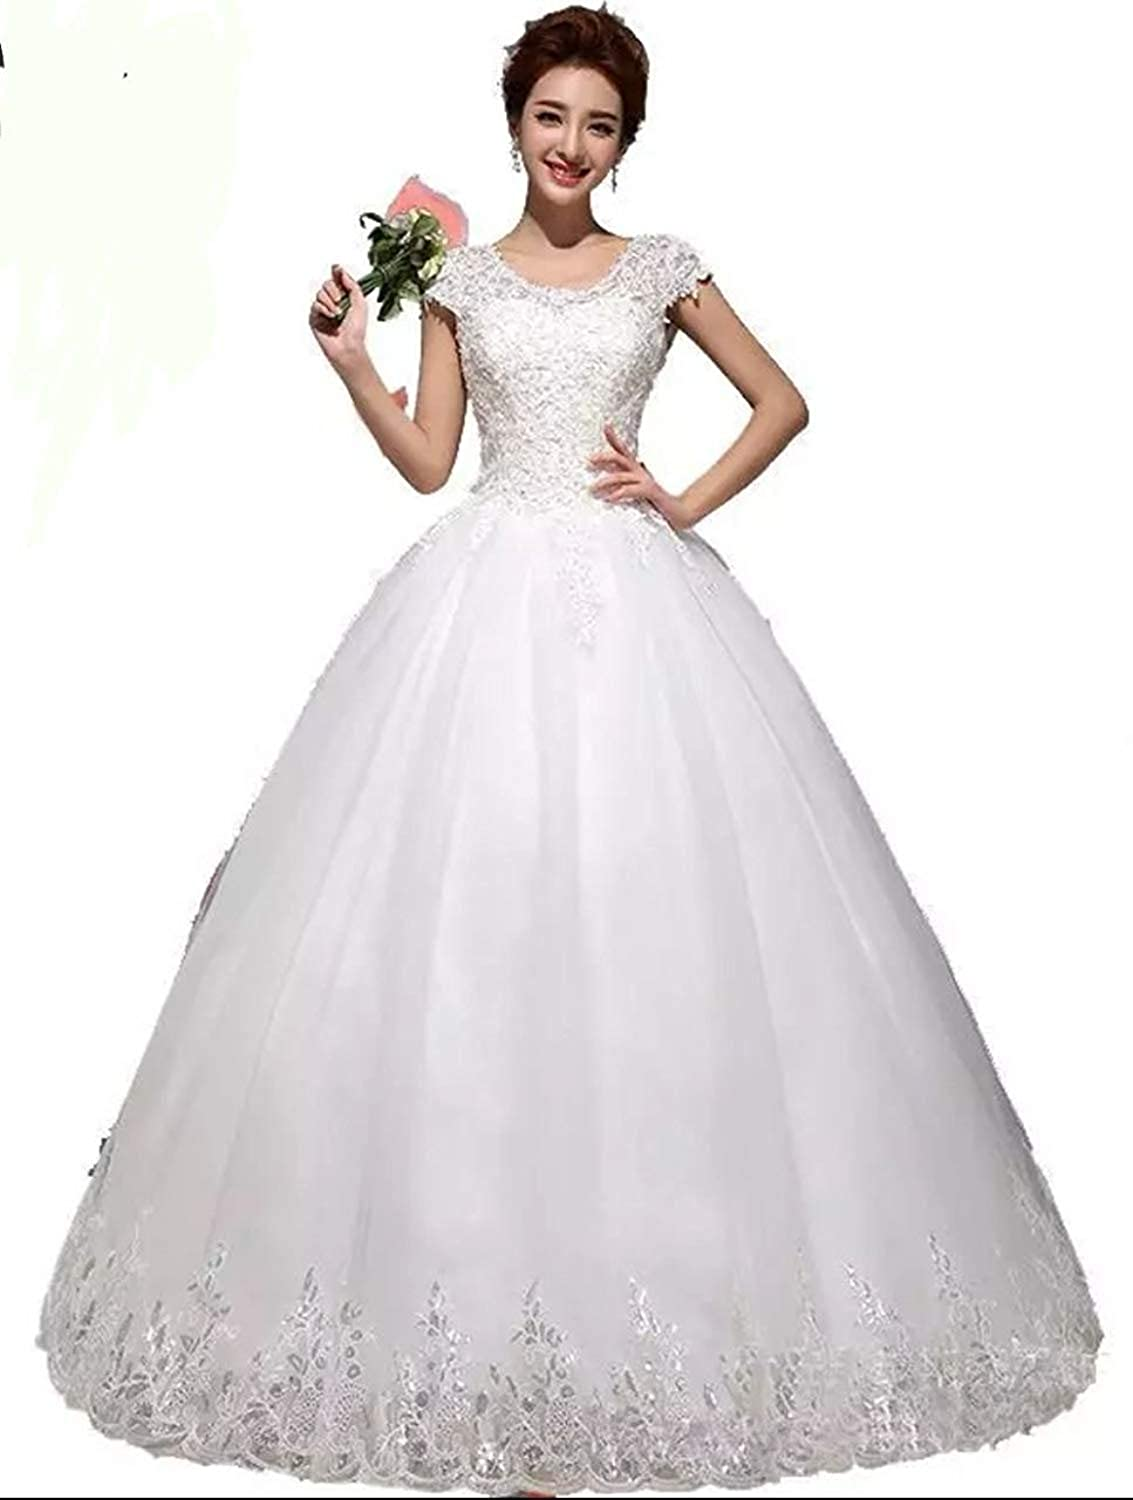 Indian Christian Wedding Dresses Pictures Ficts